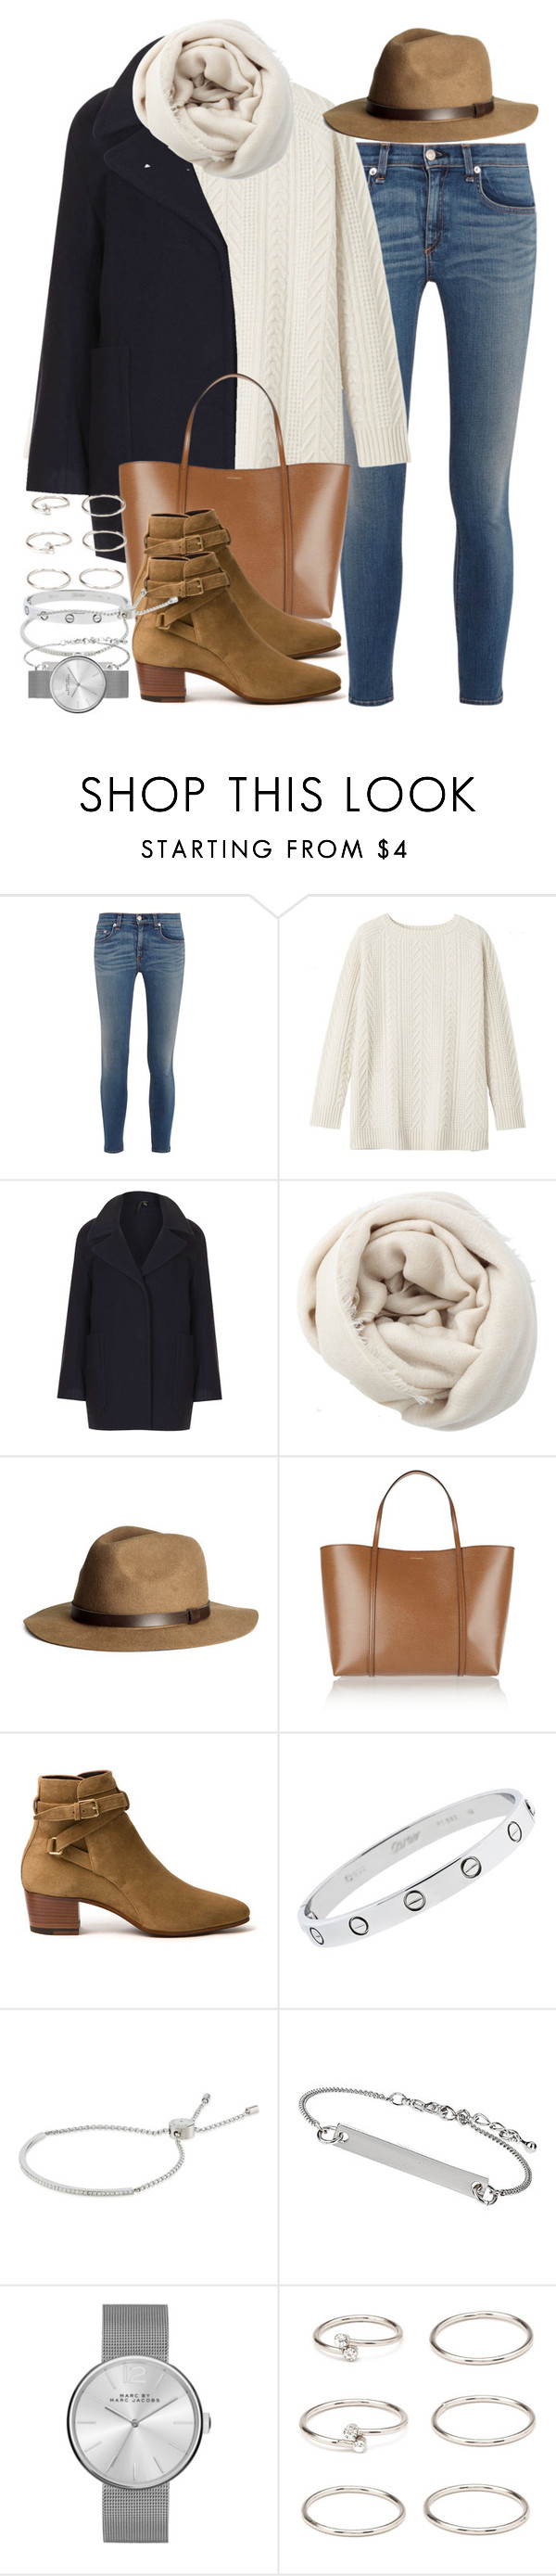 """Sin título #3595"" by hellomissapple on Polyvore featuring moda, rag & bone, Toast, Boutique, Bajra, H&M, Dolce&Gabbana, Yves Saint Laurent, Cartier y Michael Kors"